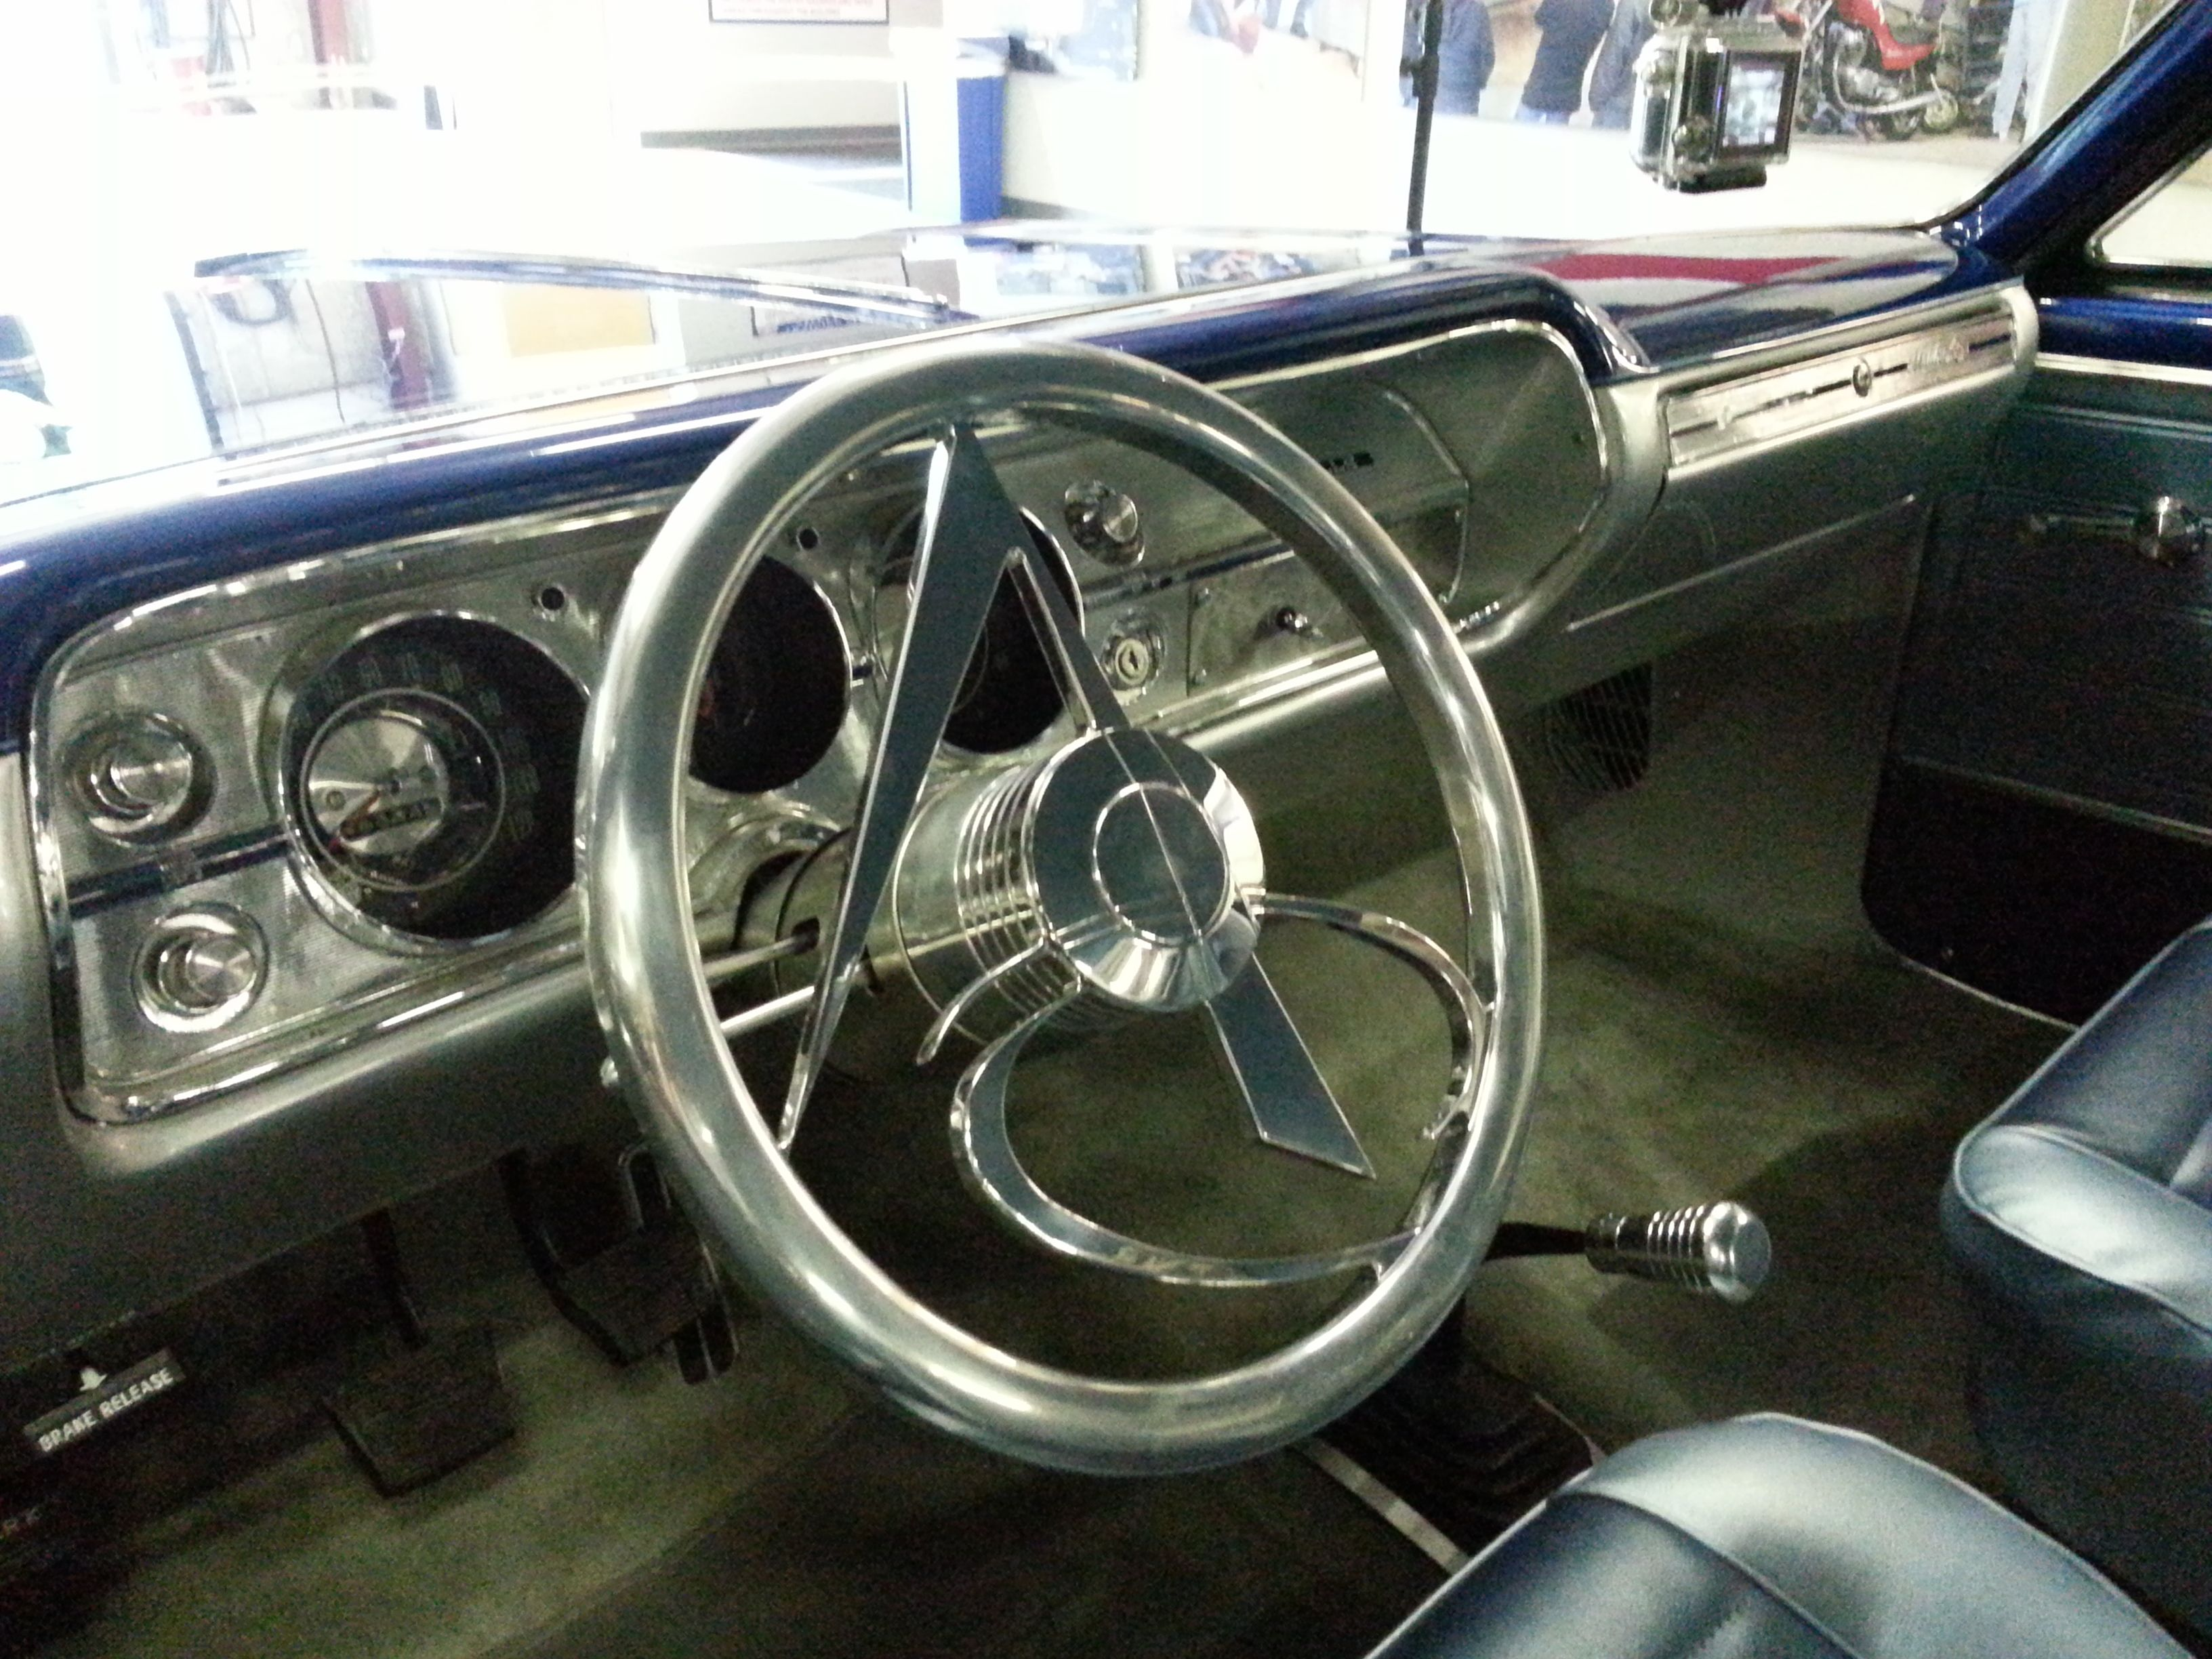 Custom Steering Wheel On 1965 Chevy Malibu Ss Restomod Ami G The Build Americanmodins